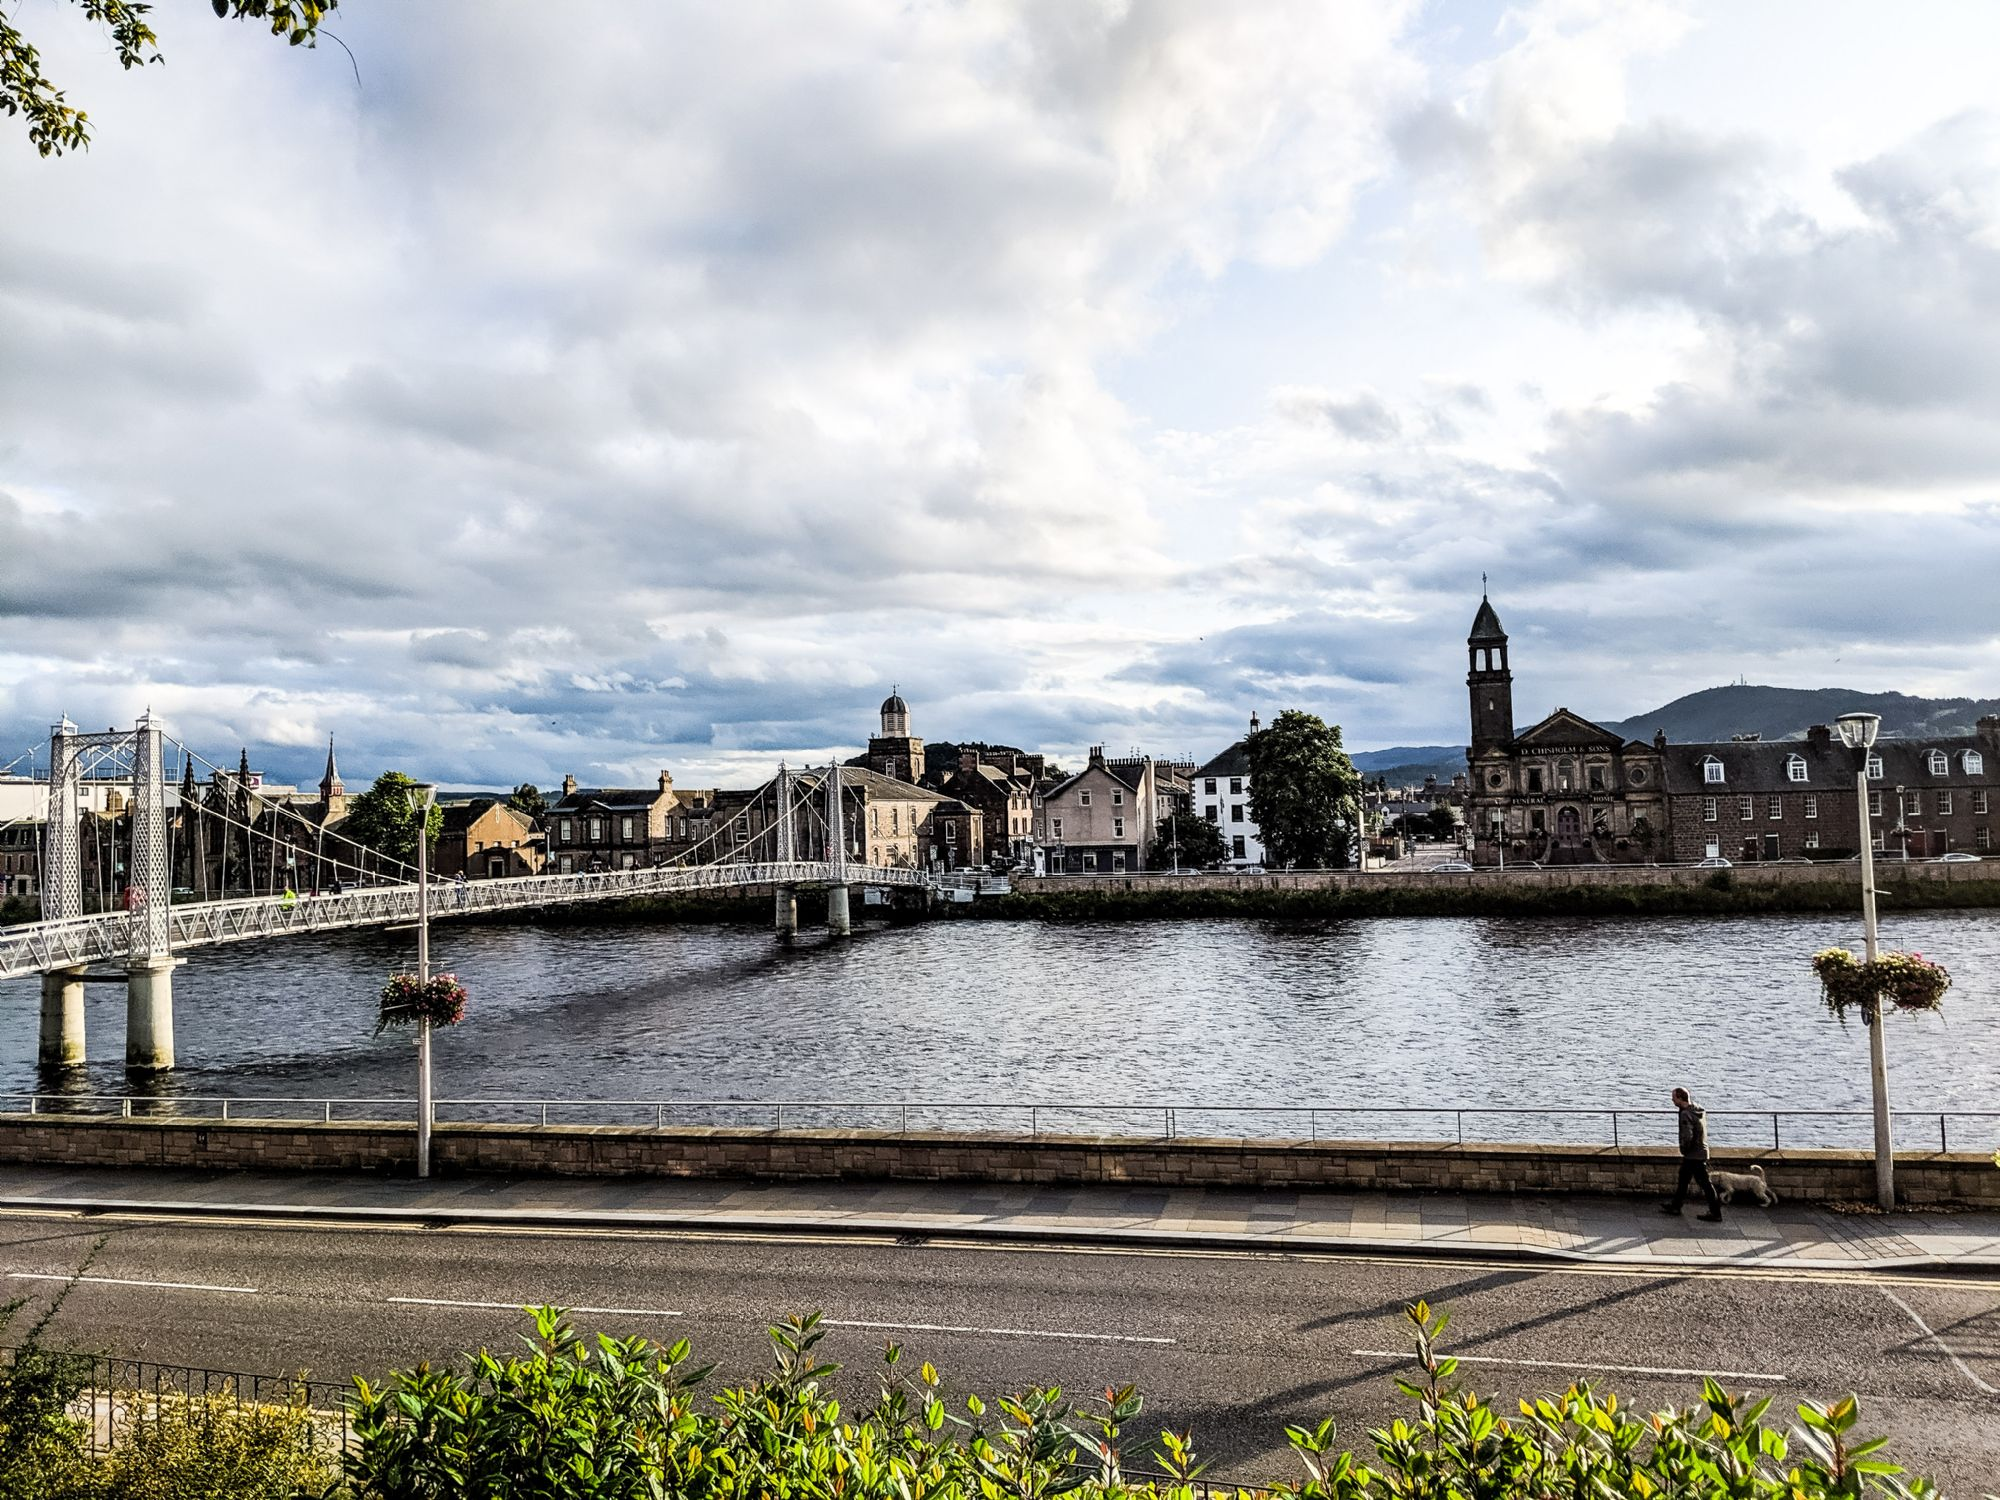 View of Inverness from cemeter